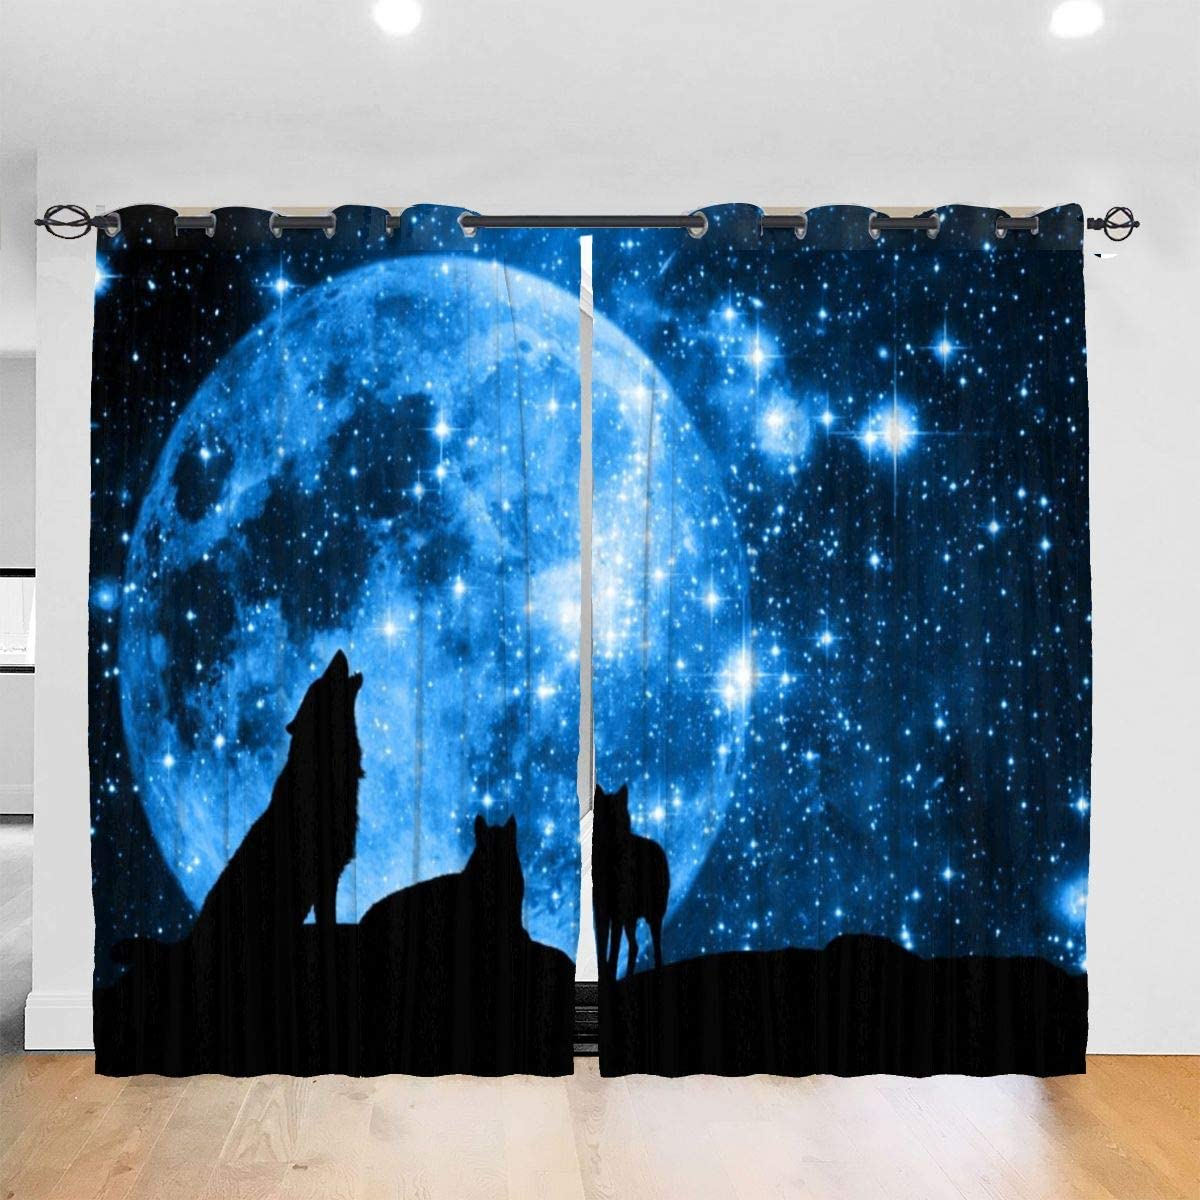 Wolves with Blue Starred Sky Moon Curtains Decorative Thick Darkening Drapes, Autumn Window Coverings for Bedroom Living Room Bathroom Or Room Divider, Set of 2 Panels